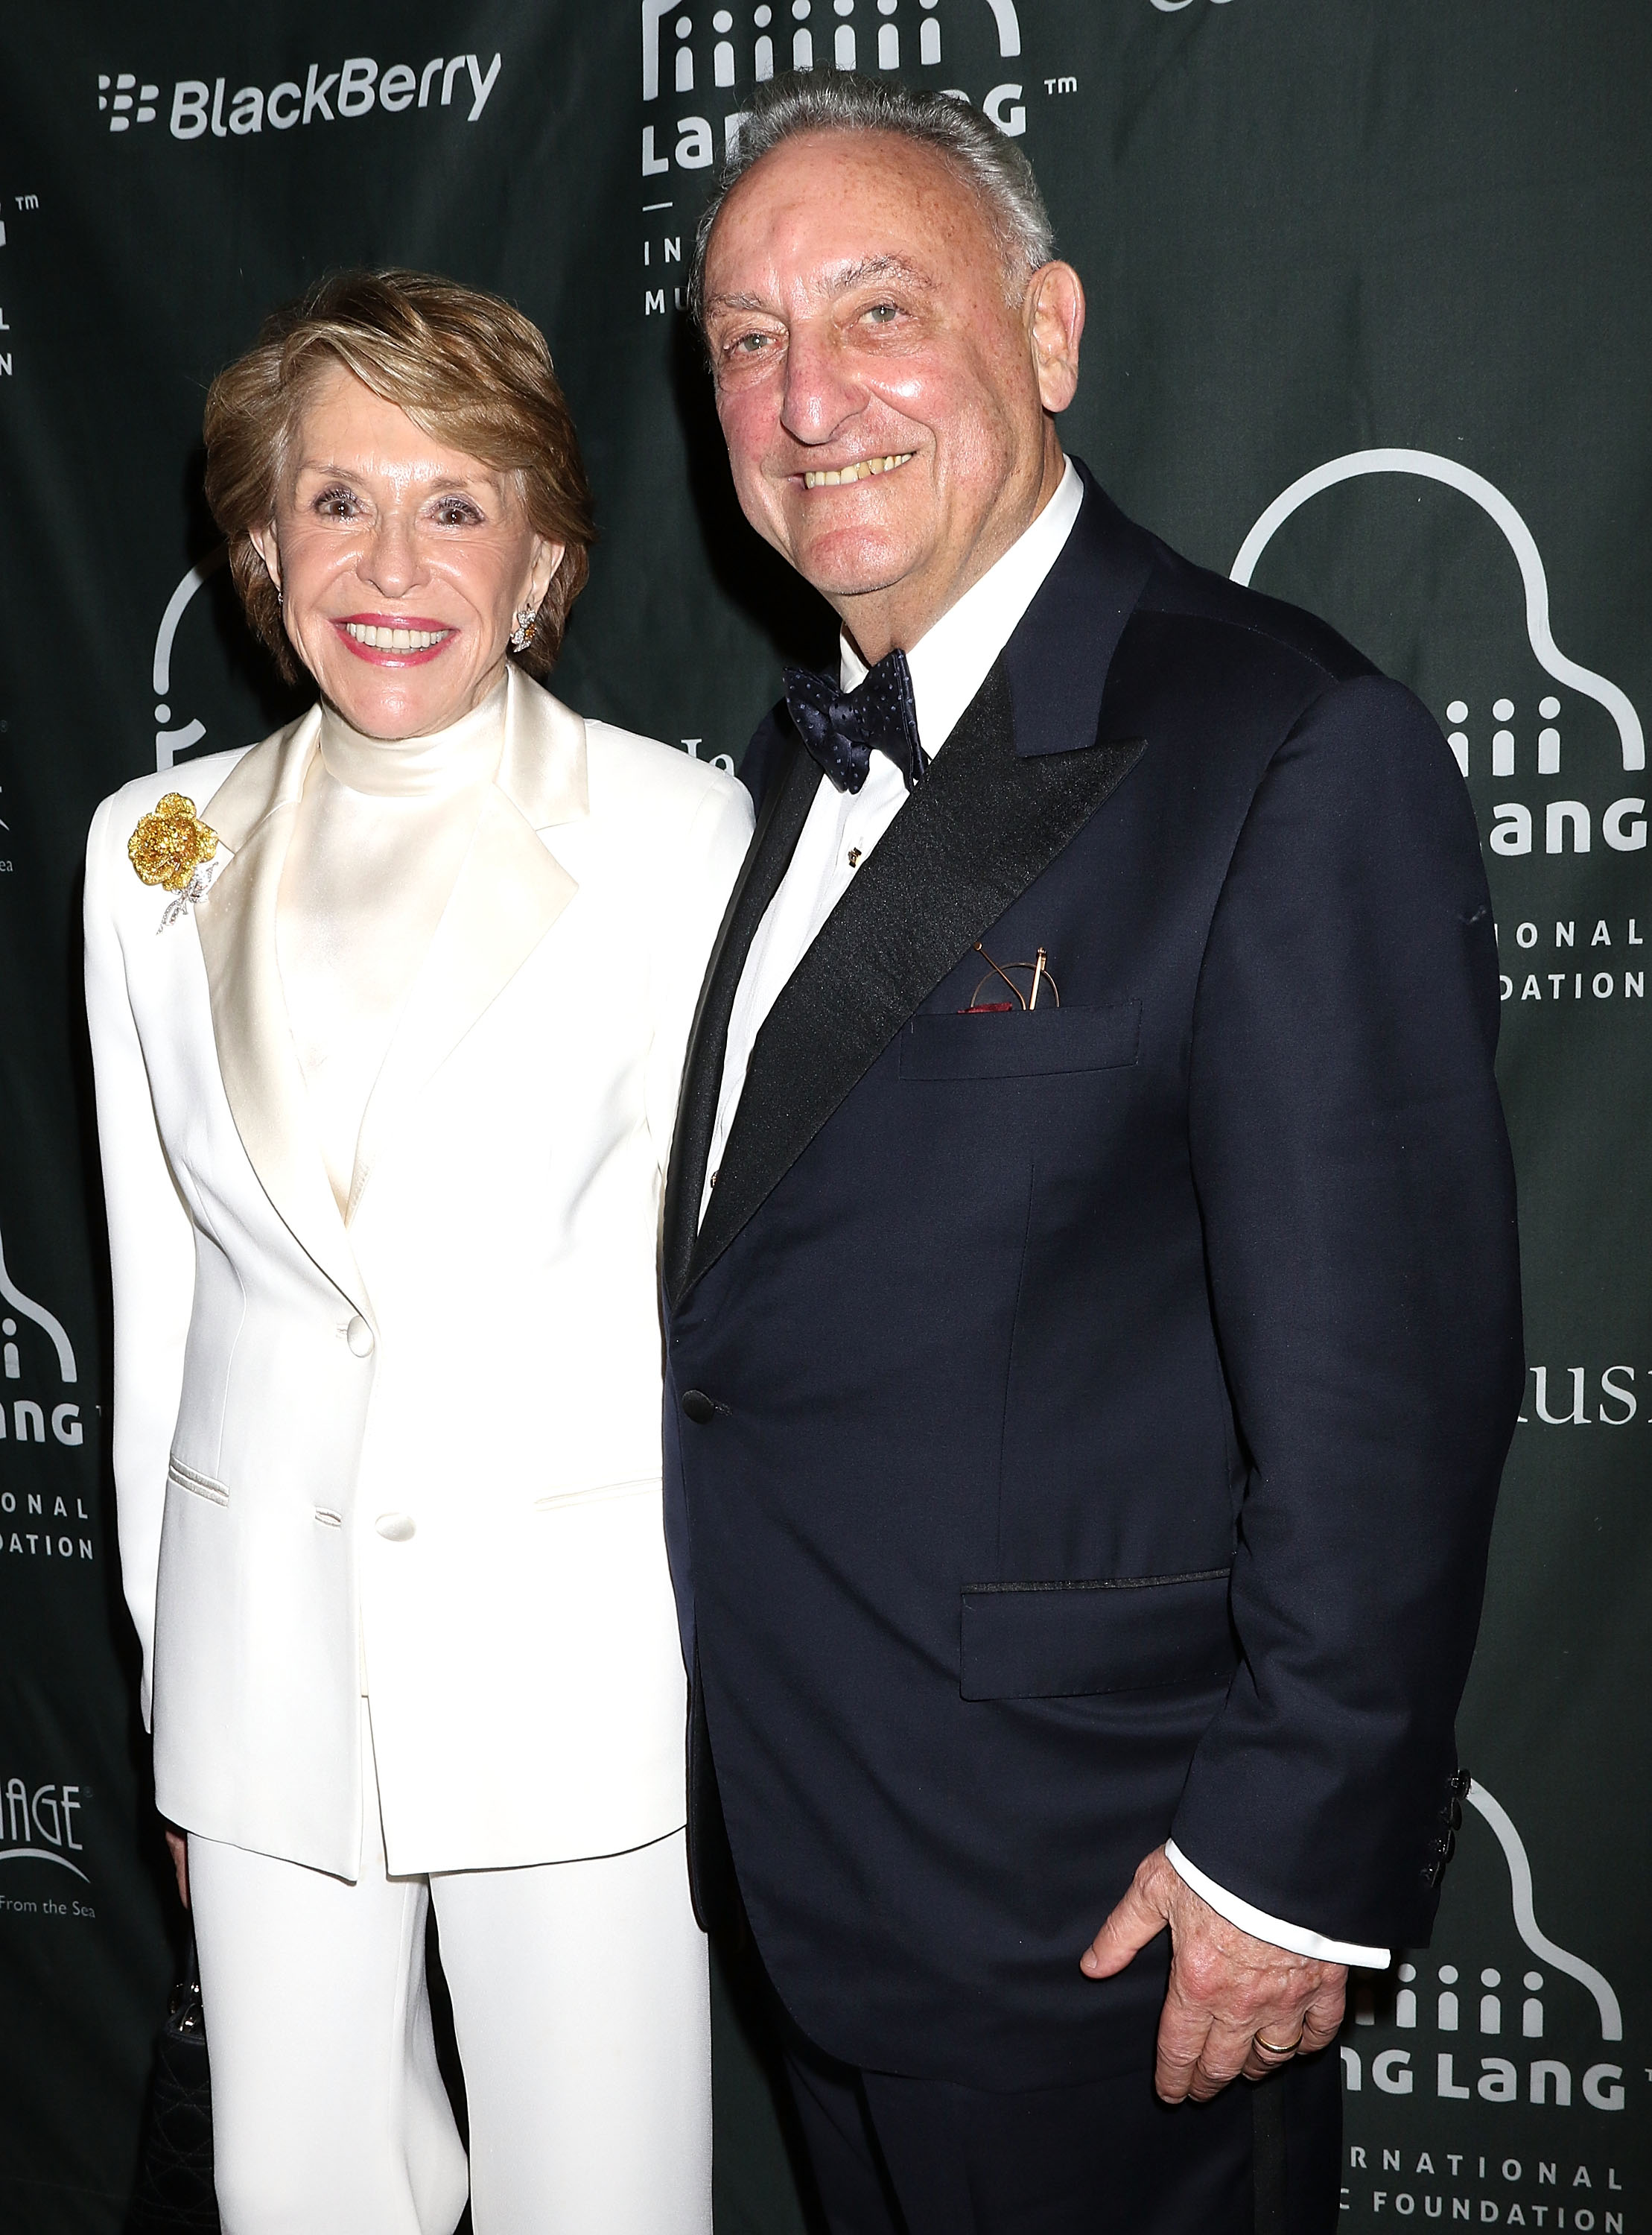 Joan H. Weill and Sanford I. Weill attend the Lang Lang International Music Foundation Gala at Cipriani 25 Broadway on October 17, 2016 in New York City. (Photo by )